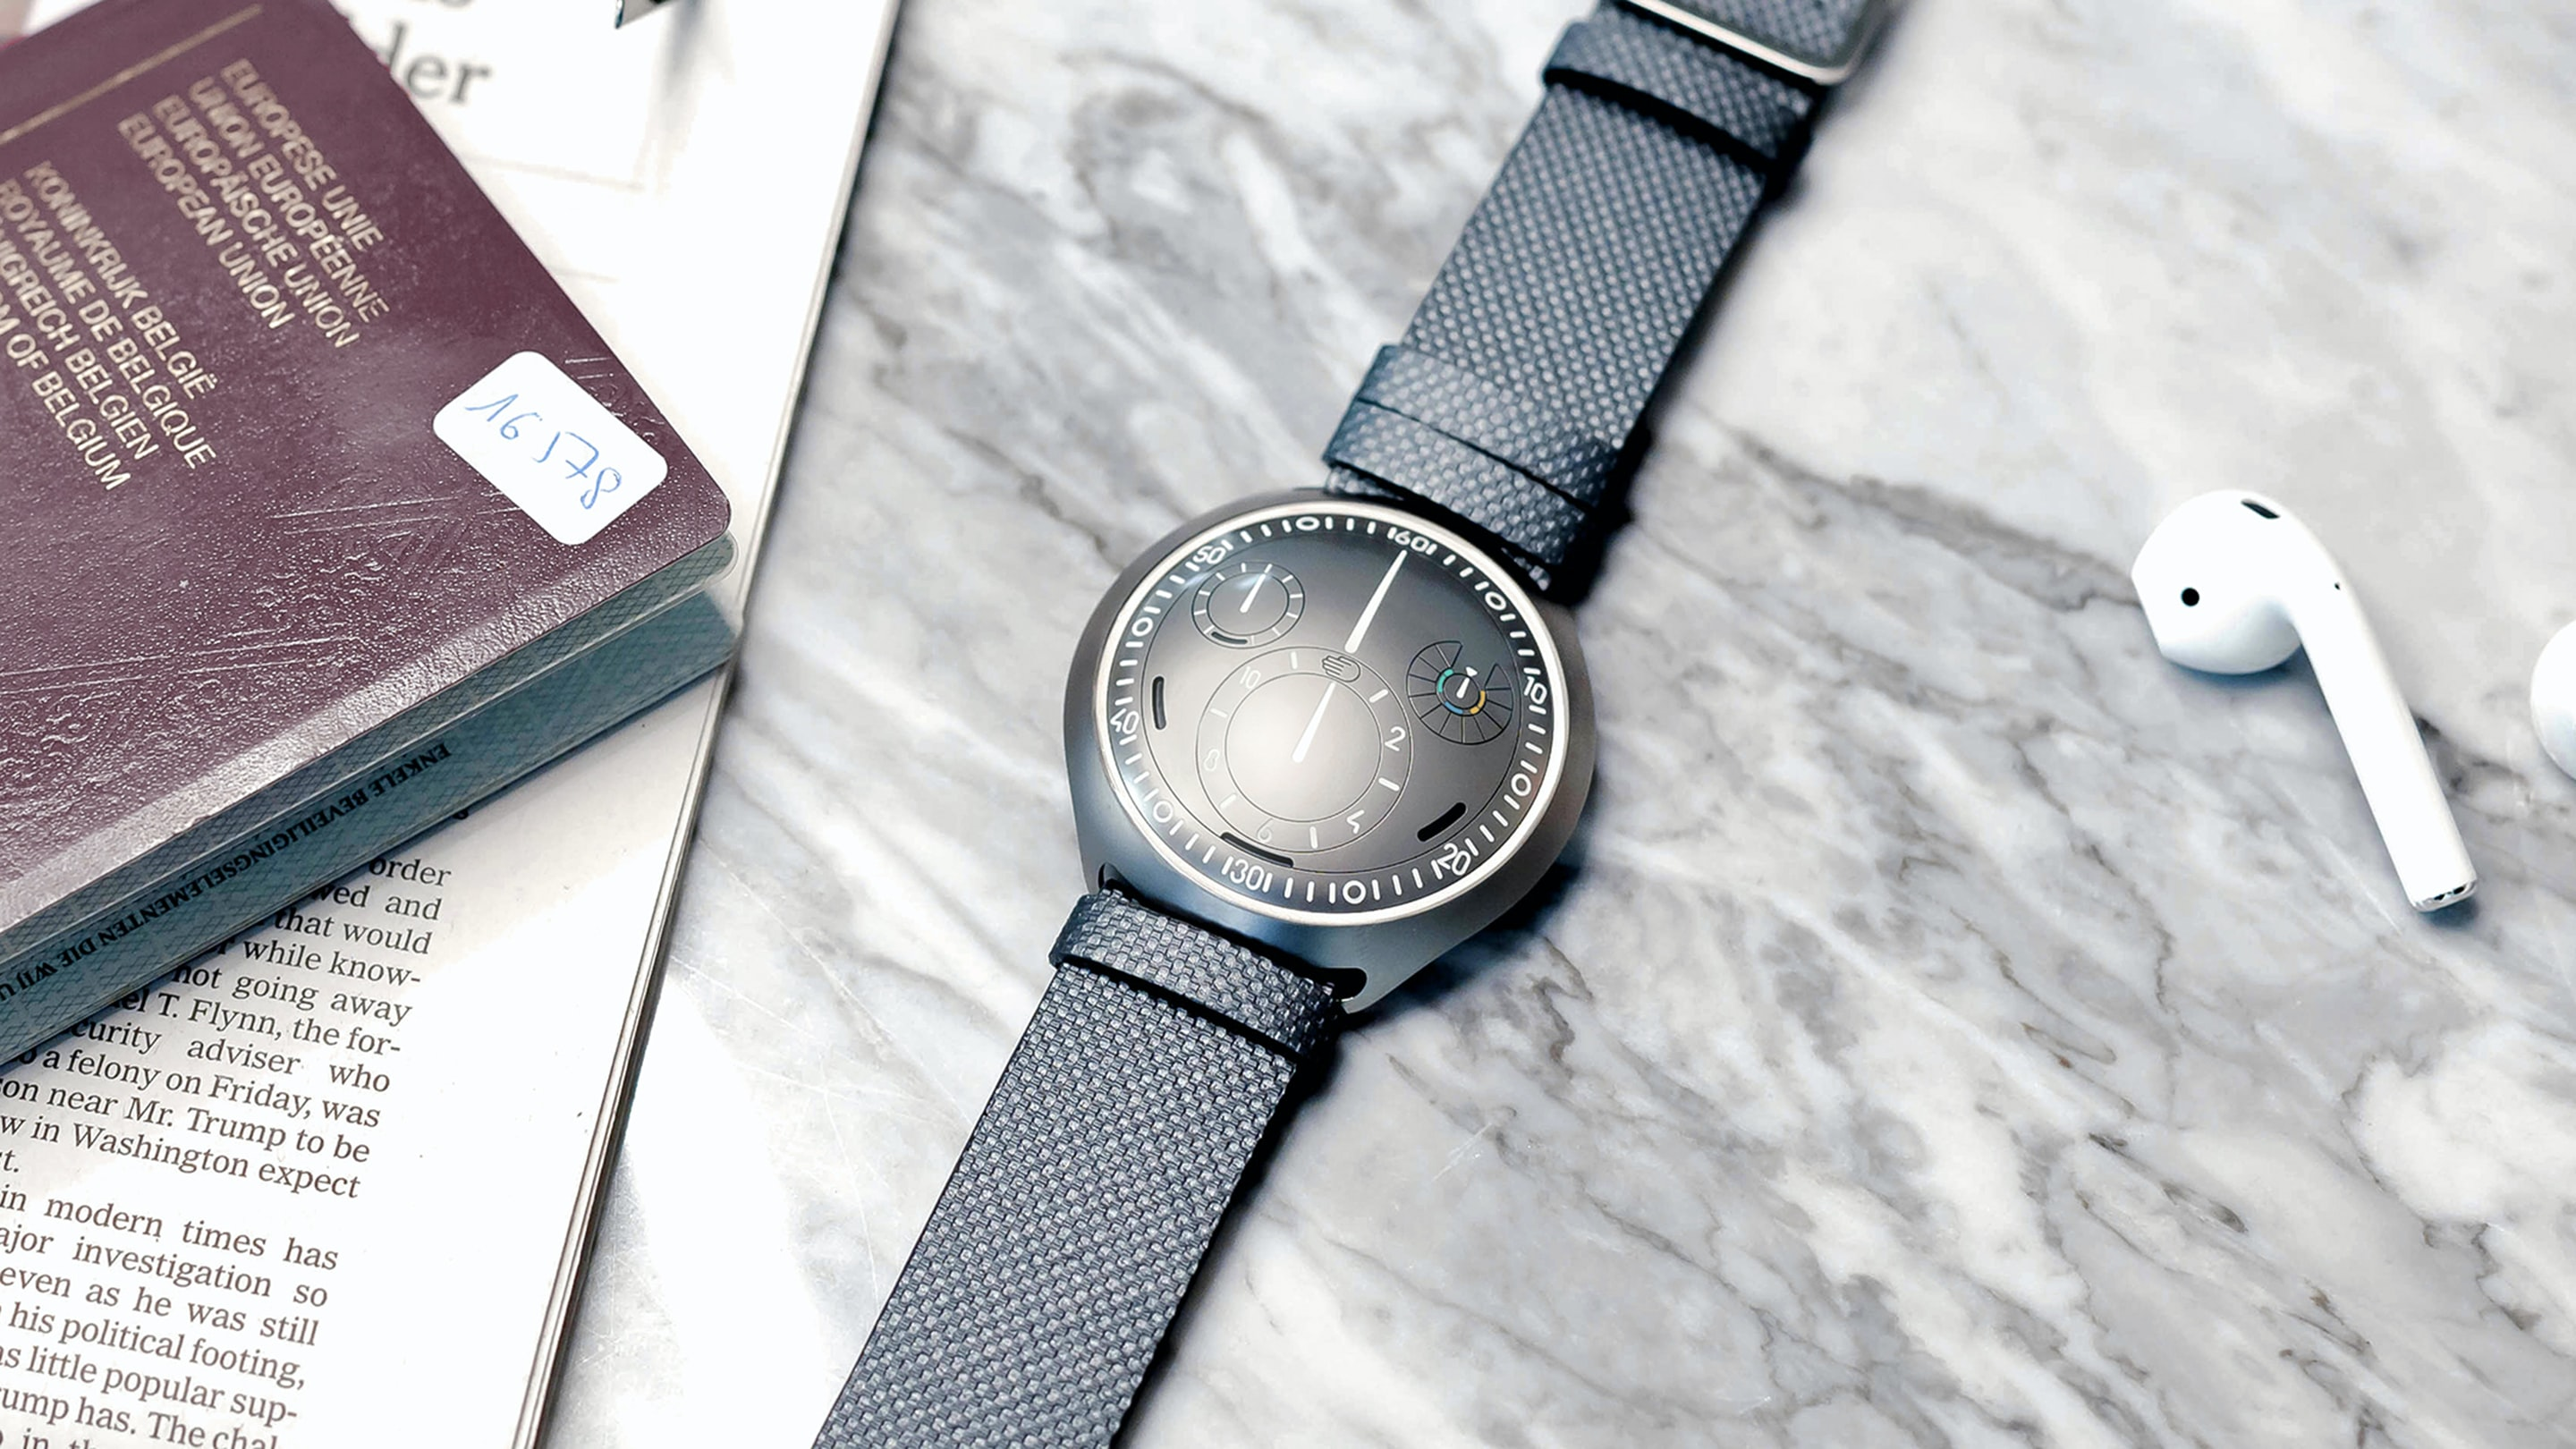 Introducing The Ressence Type 2 e Crown Concept